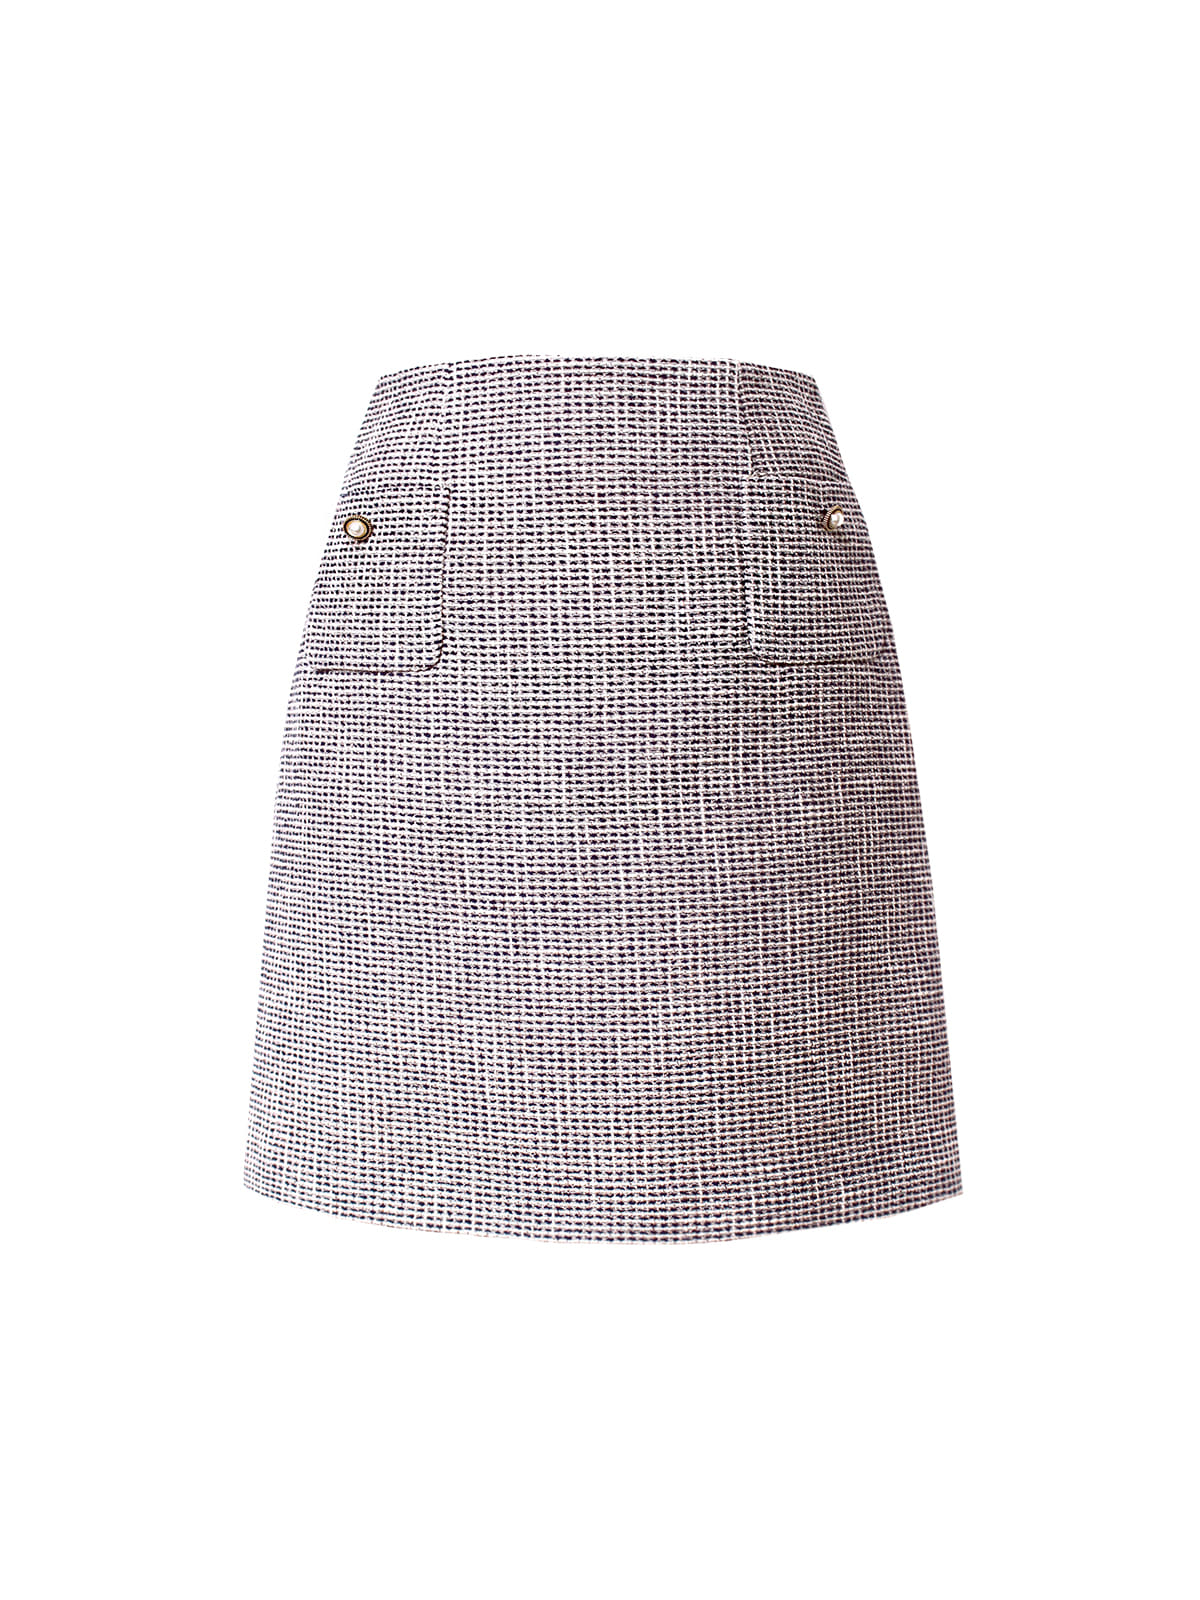 lizy tweed set up_ skirt